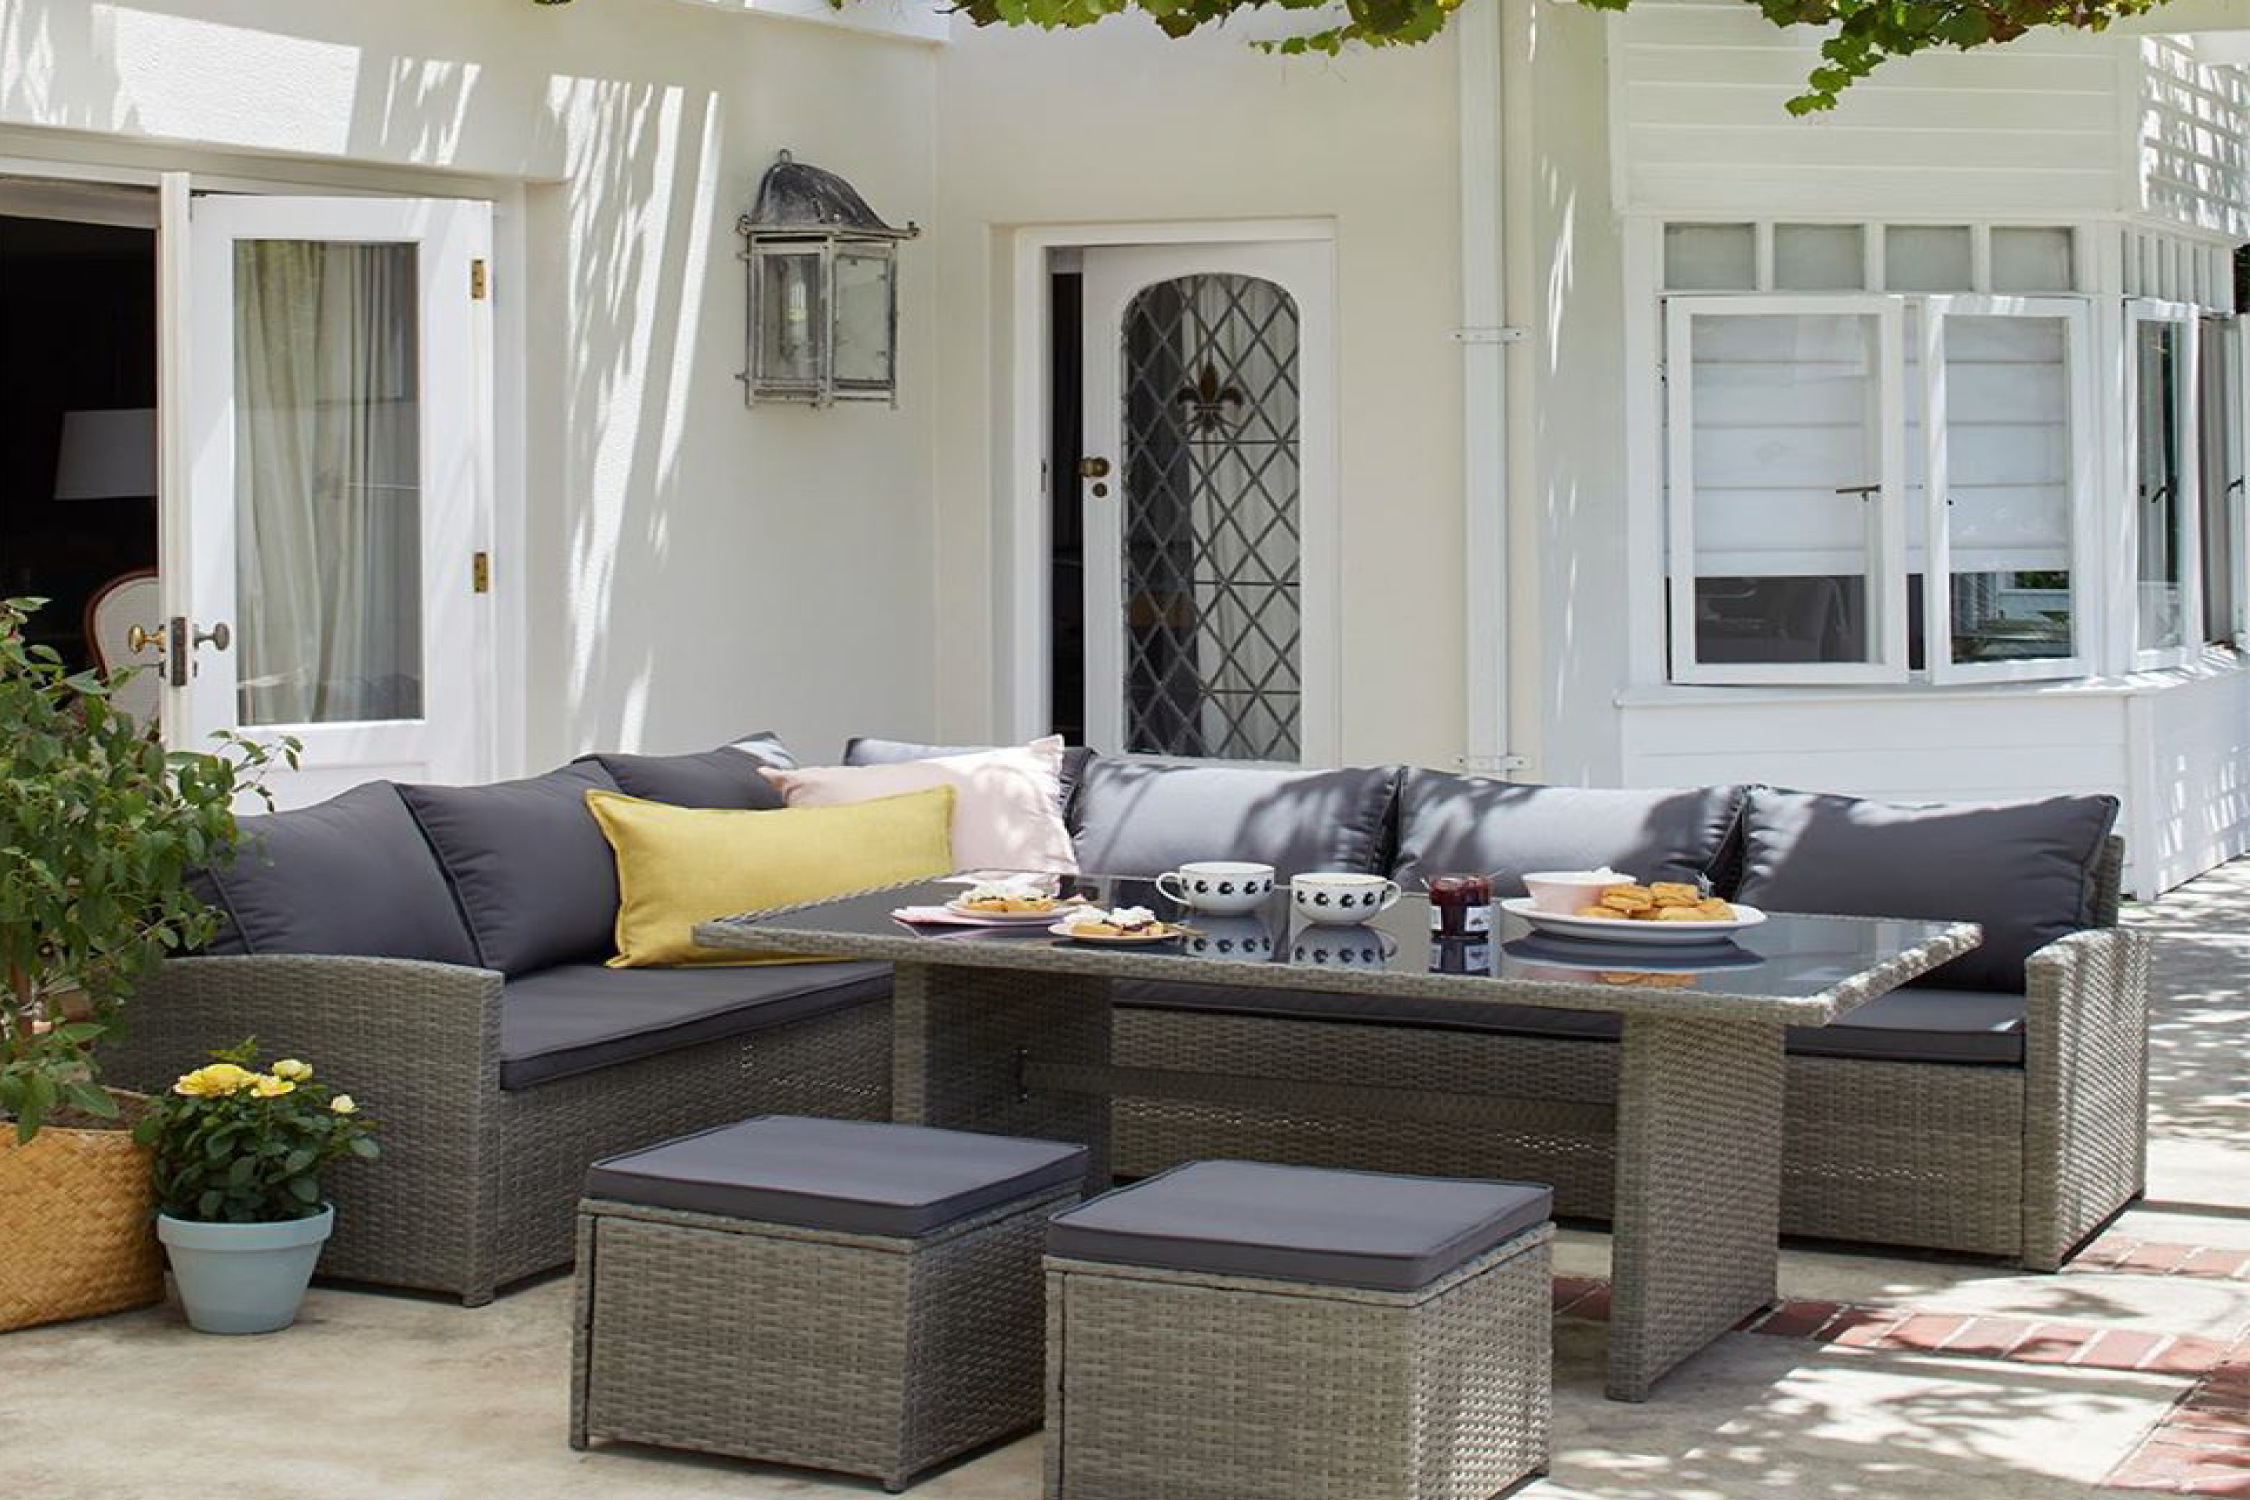 How to choose the right garden furniture?